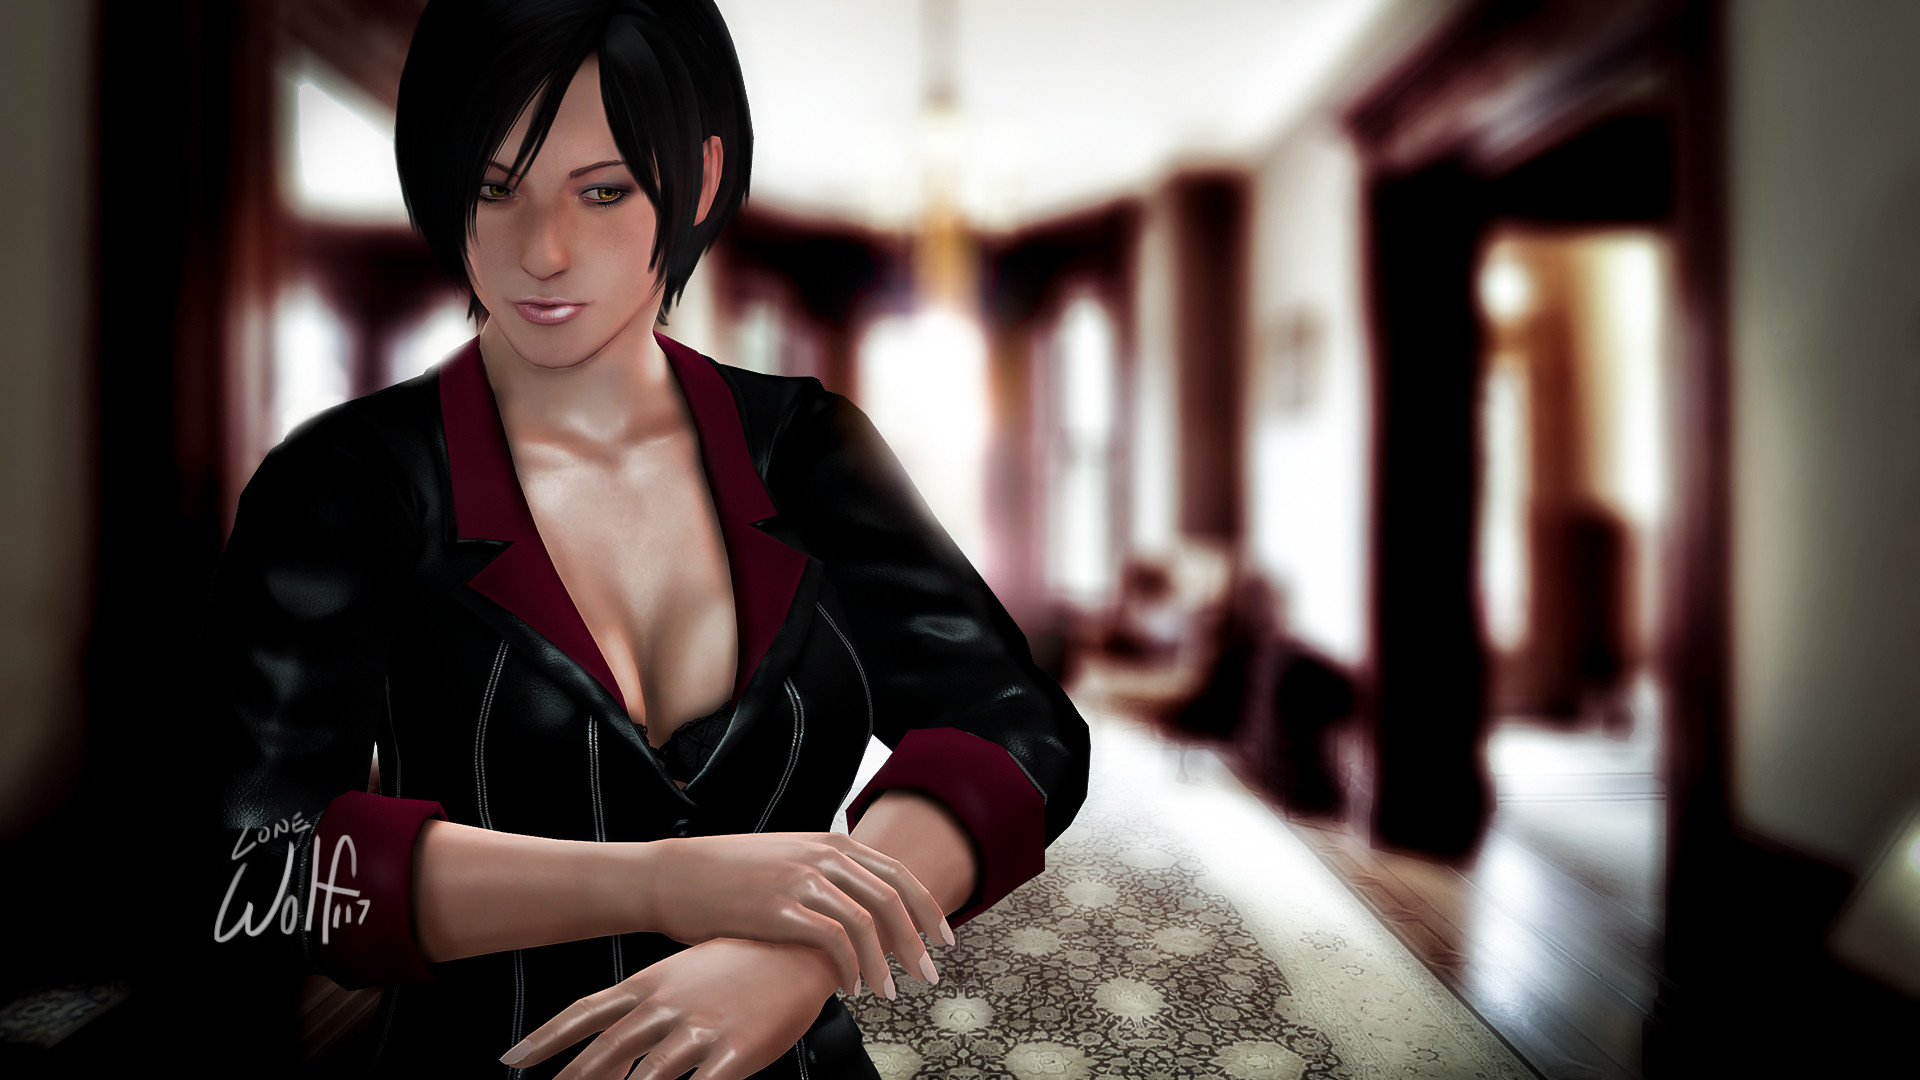 1920x1080 Ada Wong: Damnation by LoneWolf117 Ada Wong: Damnation by LoneWolf117